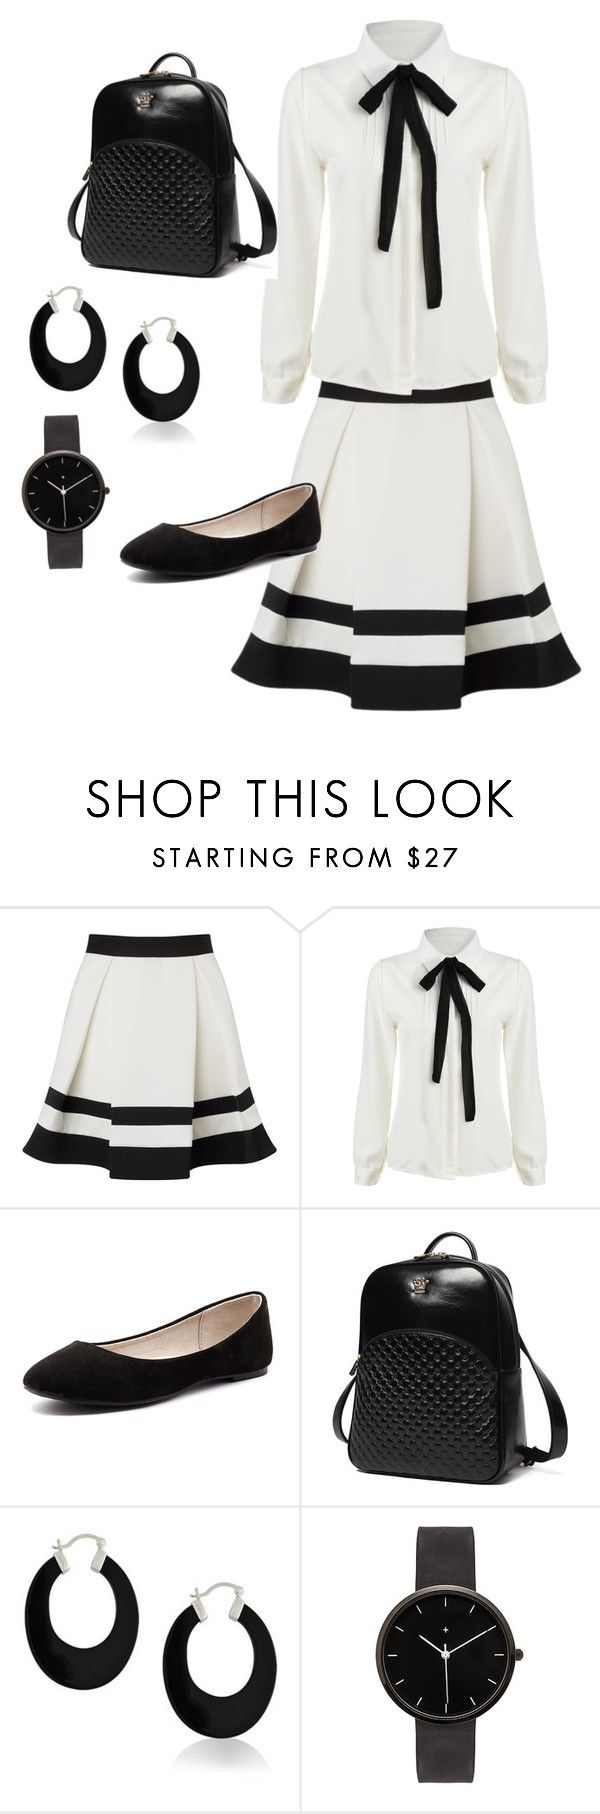 """""""Untitled #27"""" by balog-viki on Polyvore featuring Lipsy, Verali, Princess Carousel, Bling Jewelry and I Love Ugly"""